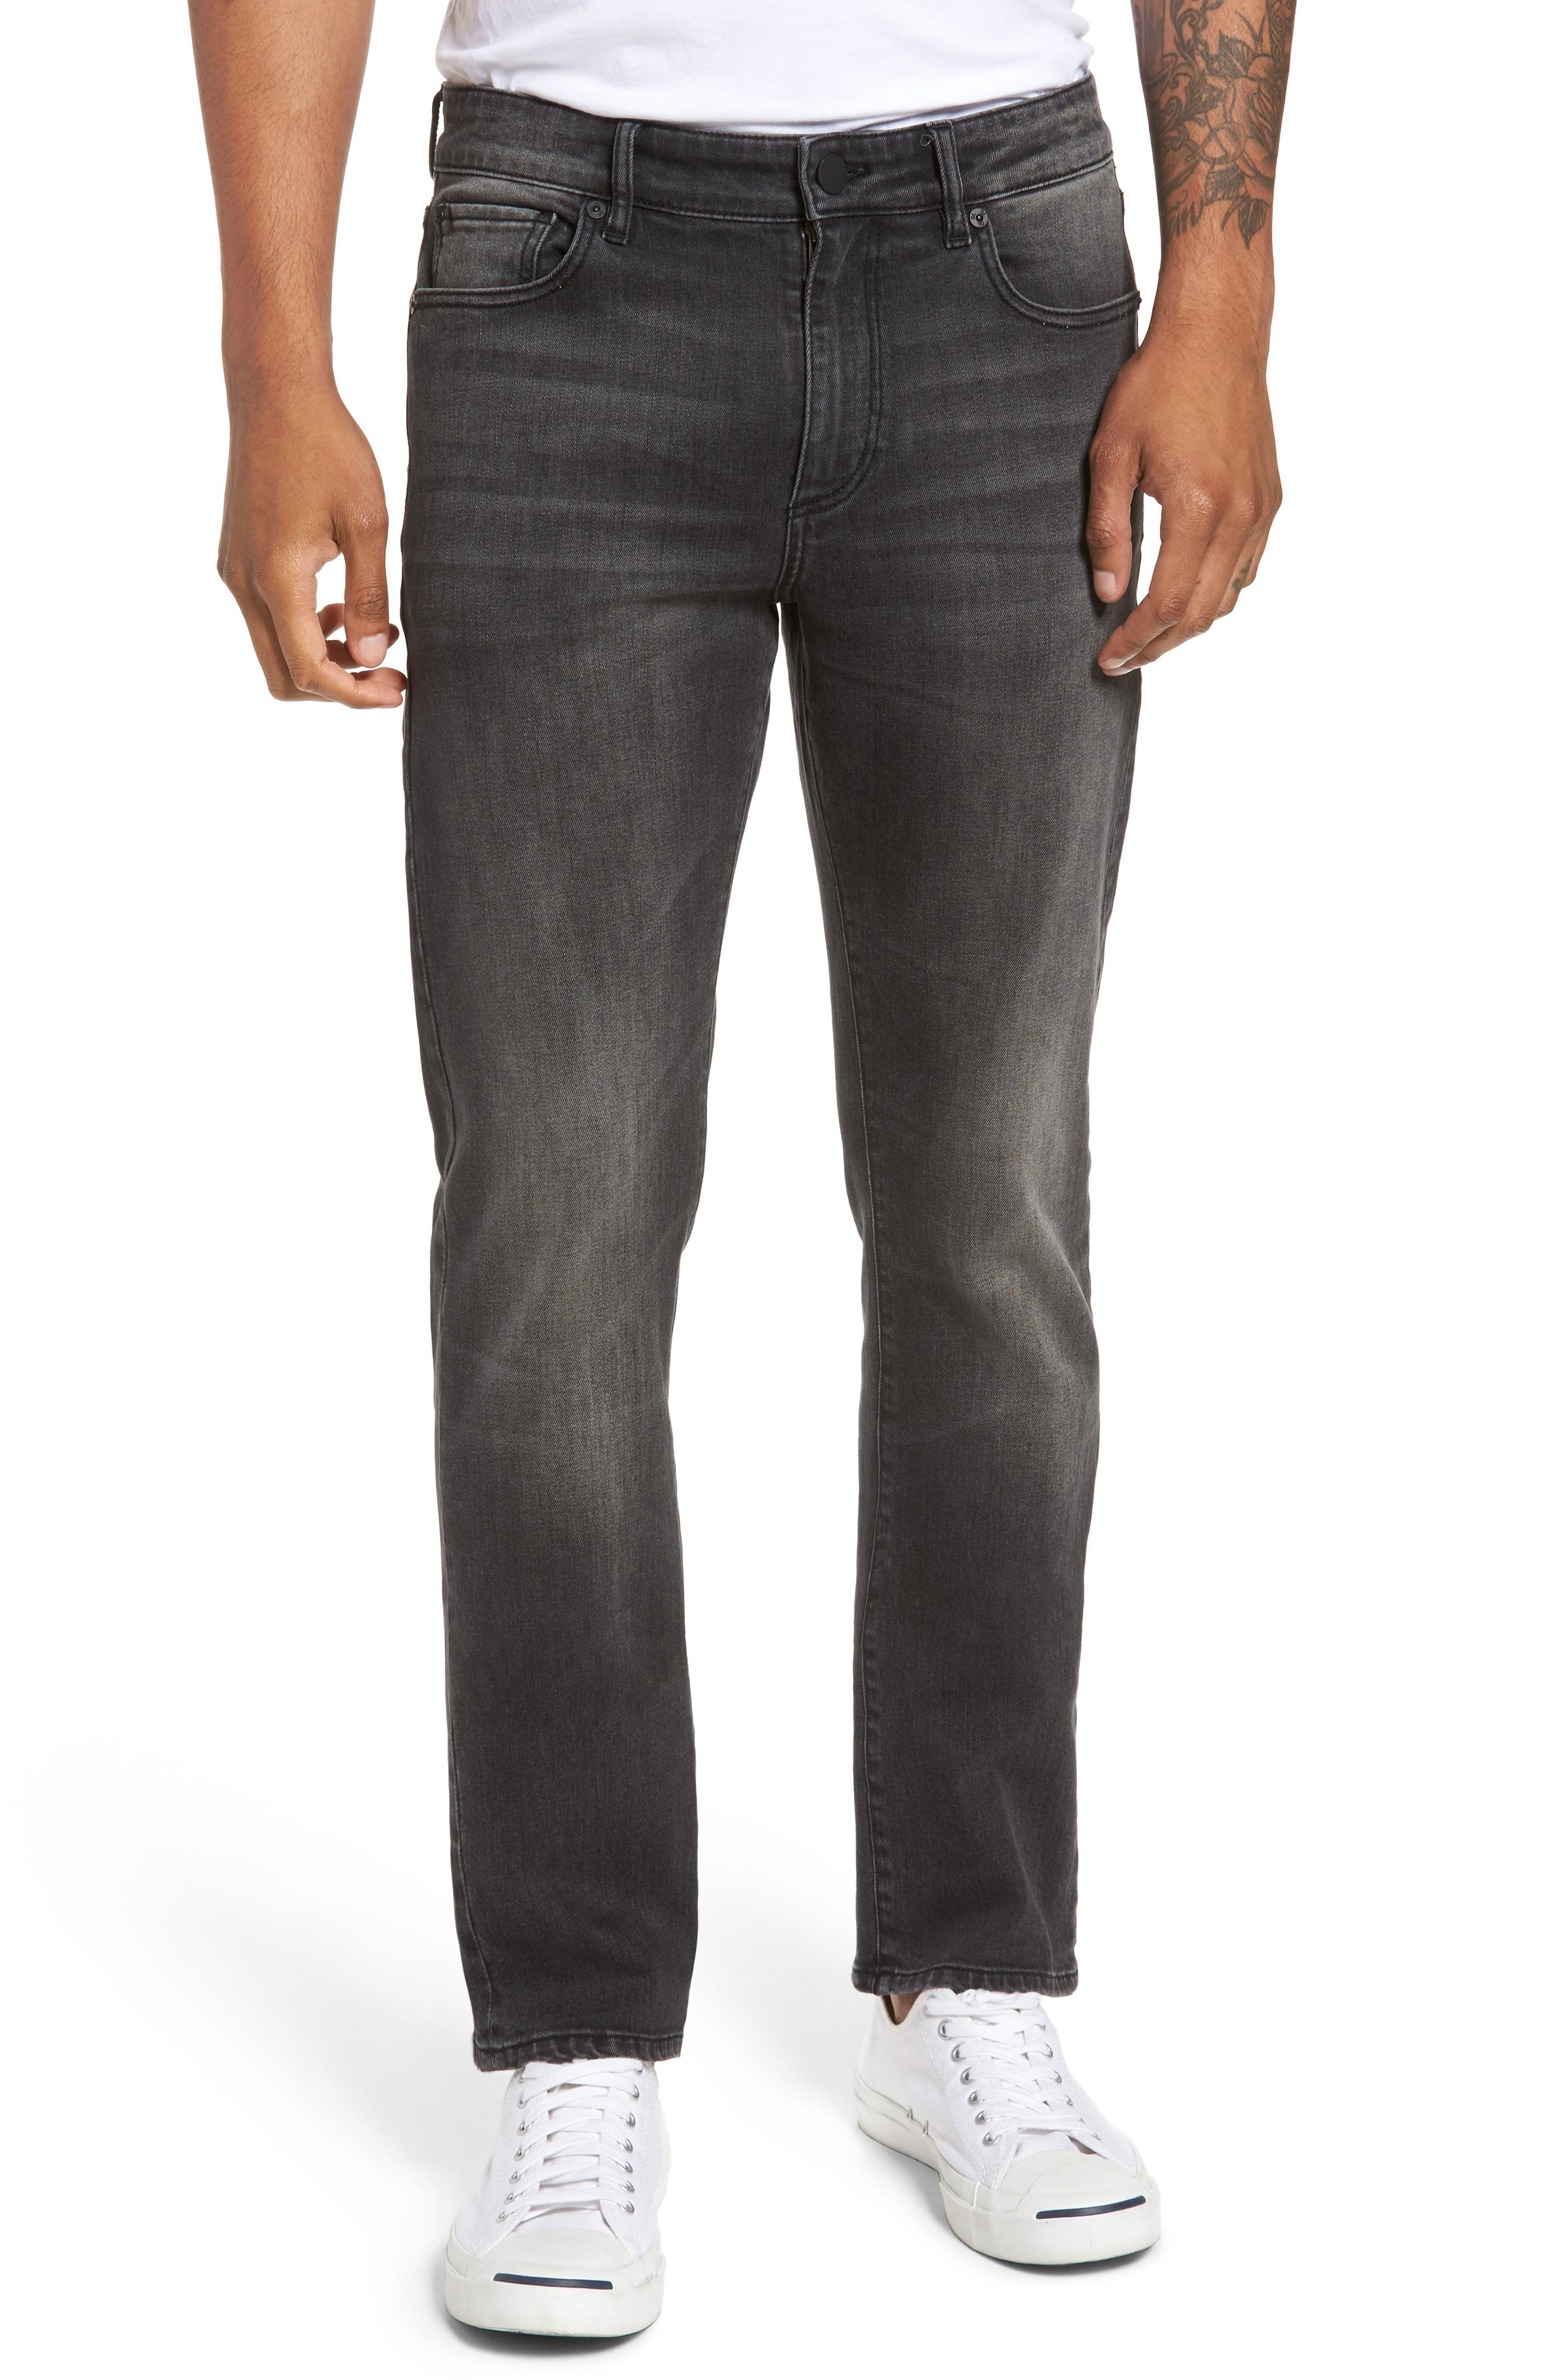 Russell Slim Straight Fit Jeans,                             Main thumbnail 1, color,                             Hound